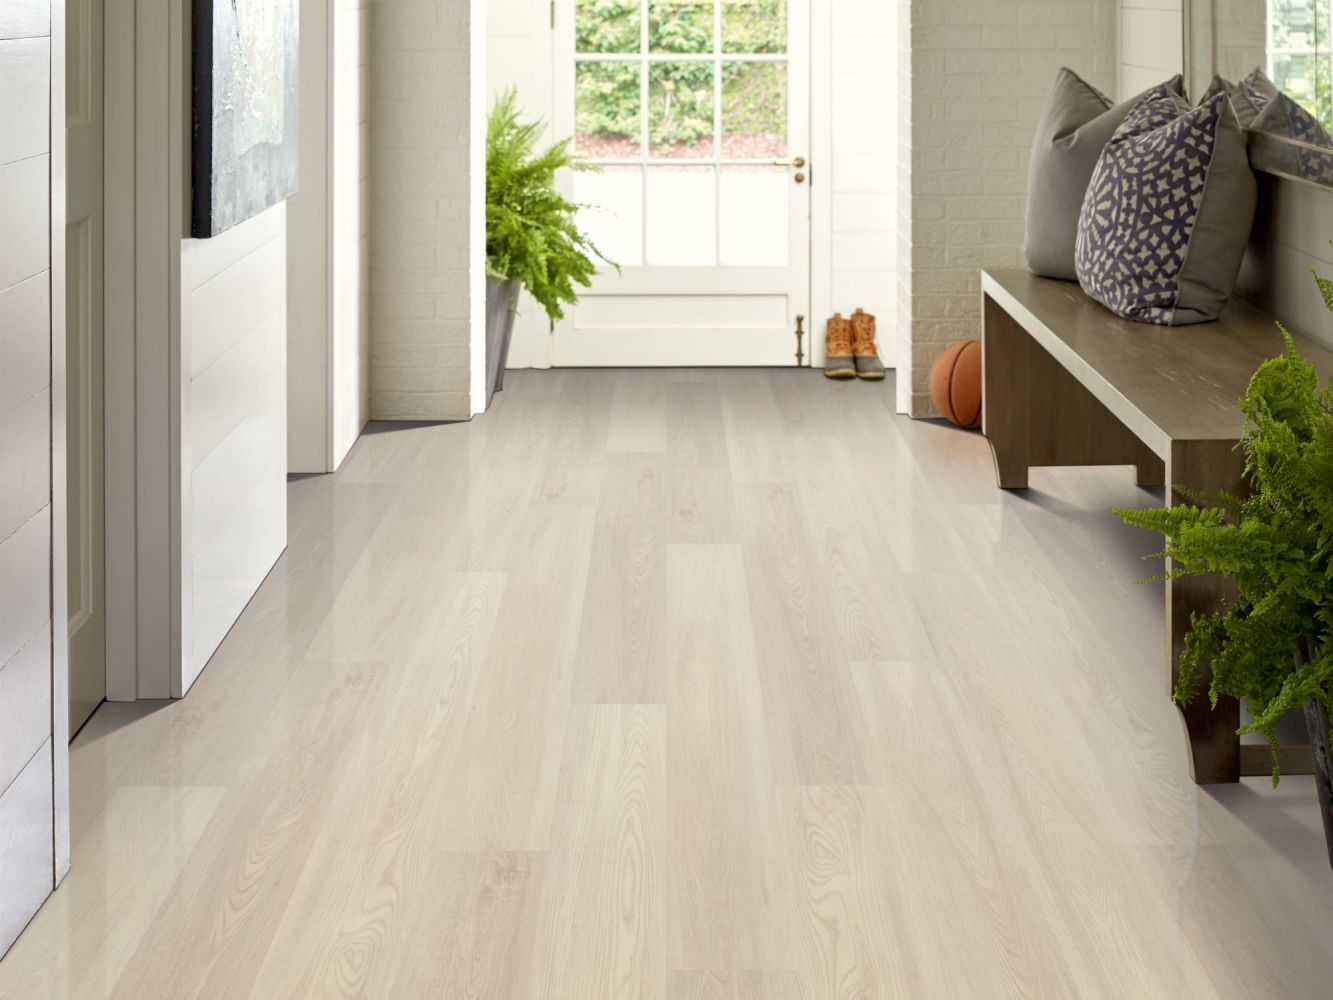 Shaw Floors Vinyl Residential Endura 512c Plus Silver Dollar 01055_0736V